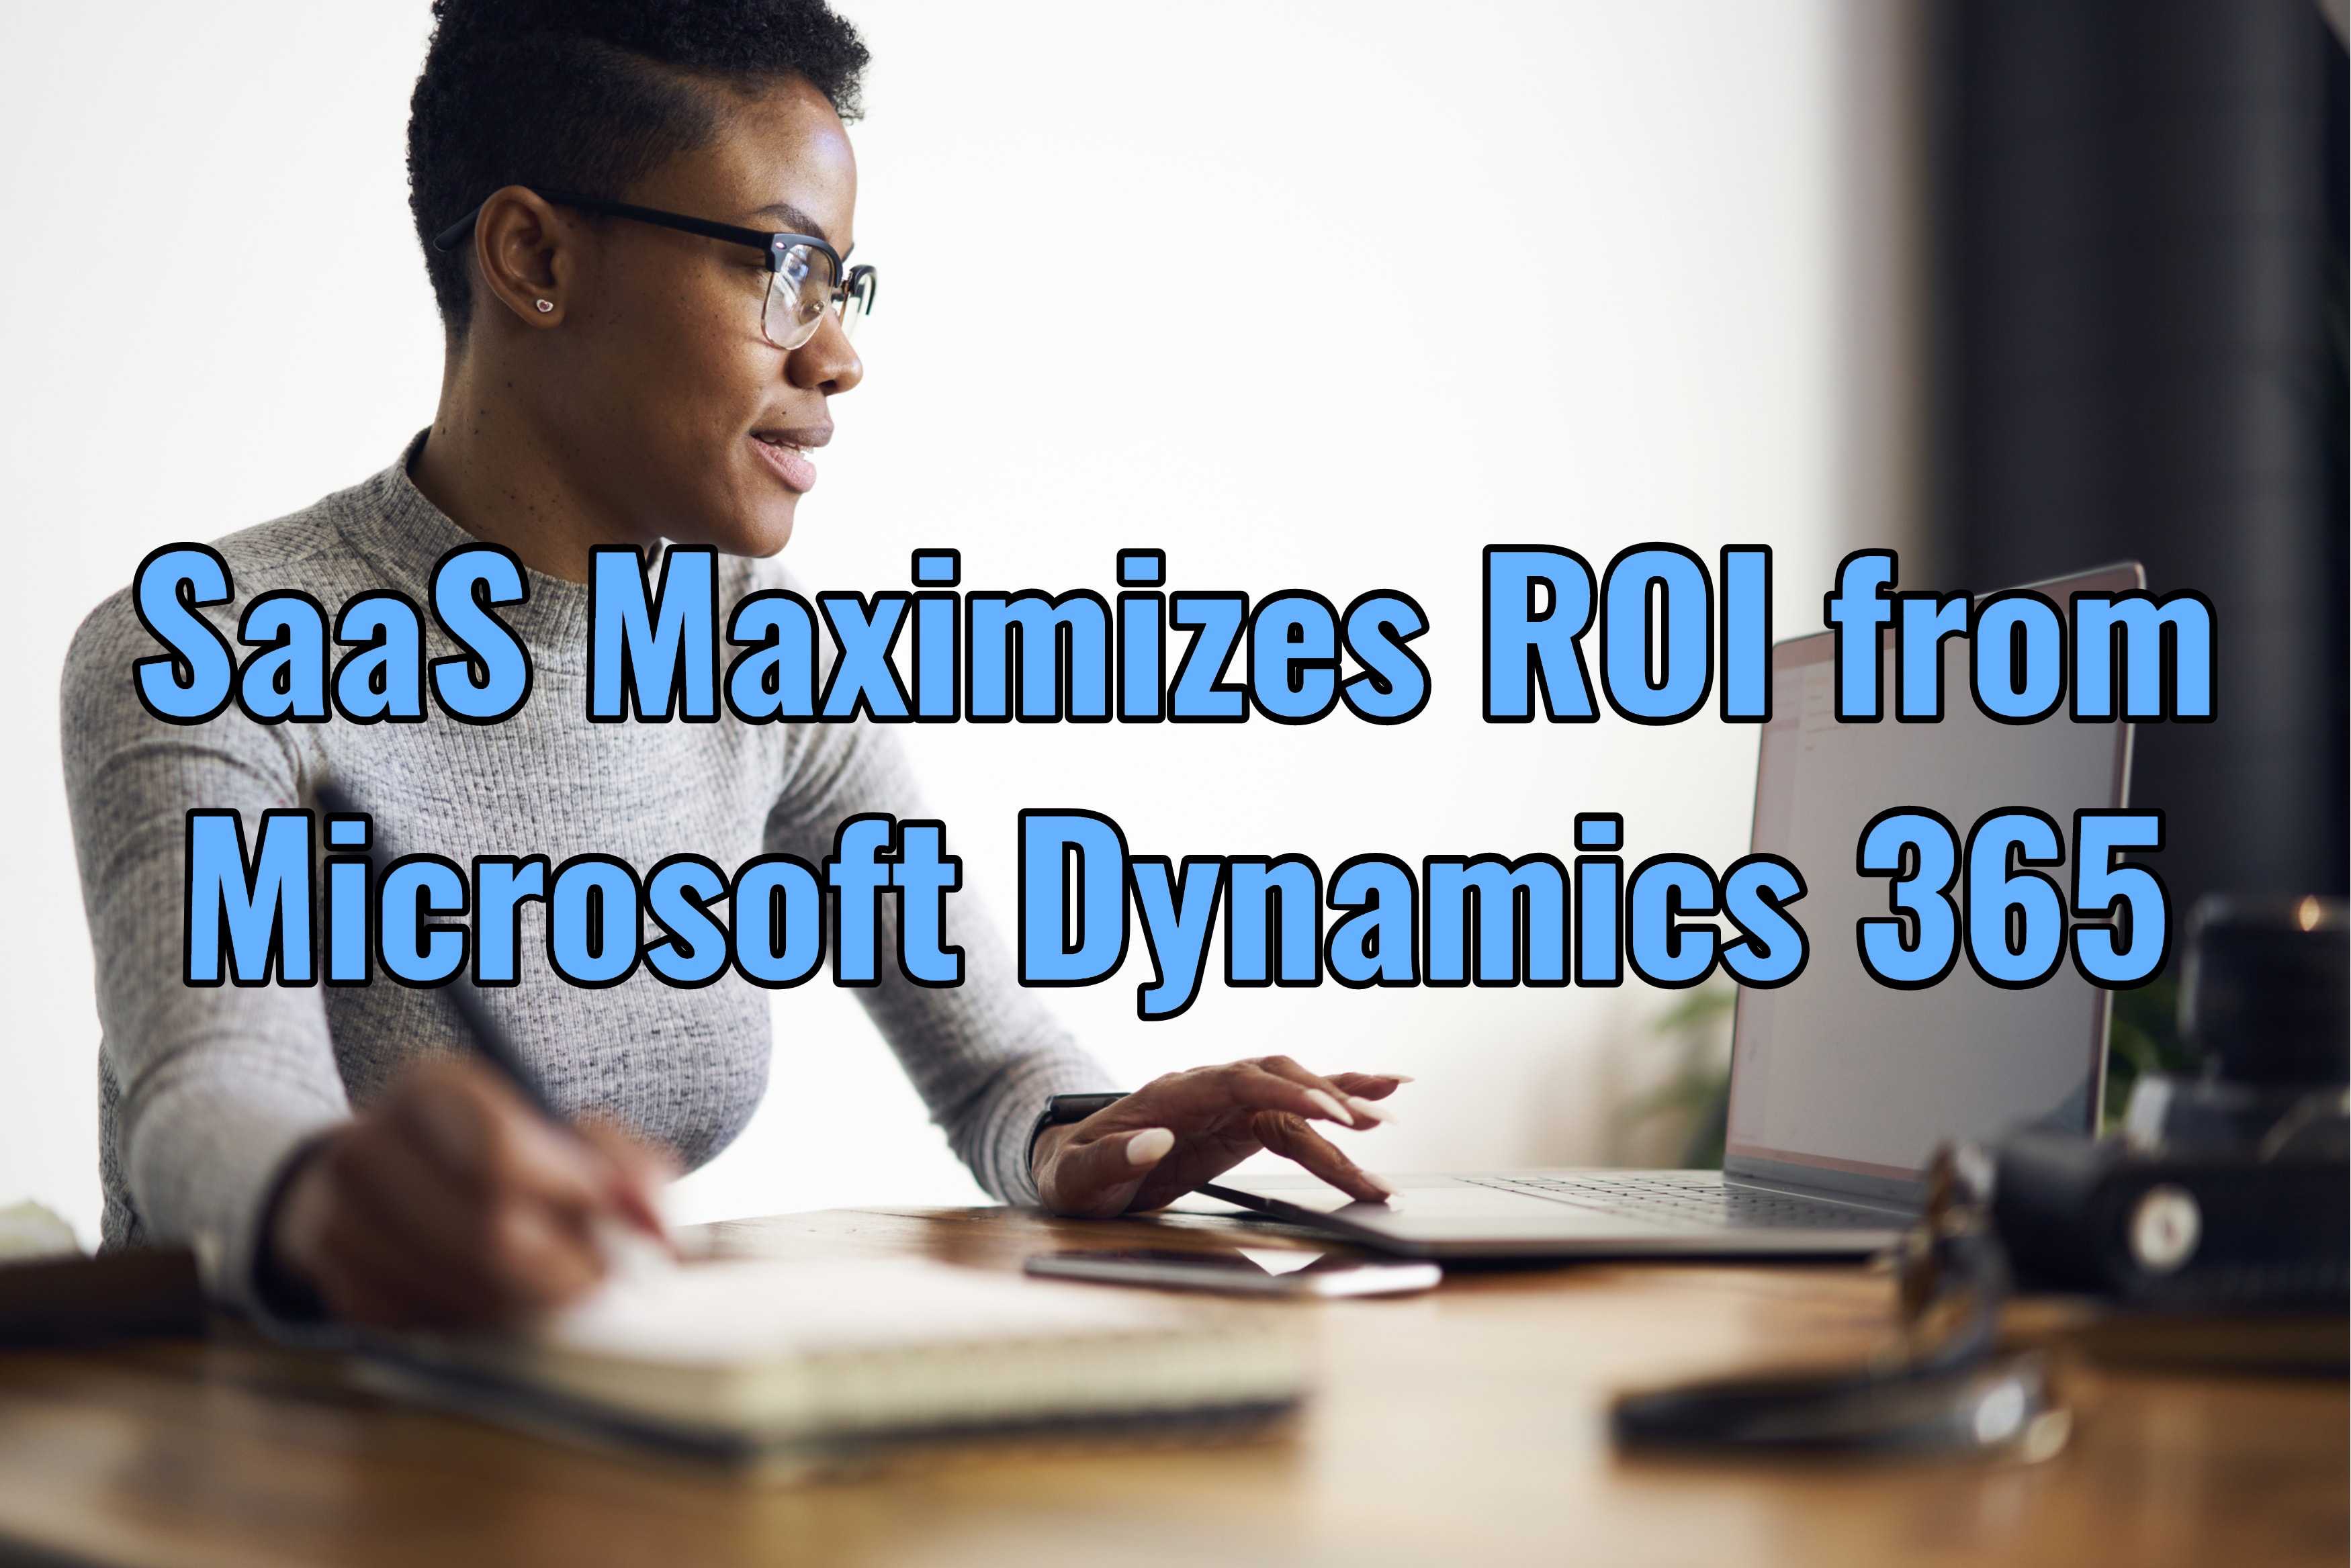 Use SaaS to Maximize ROI from Microsoft Dynamics 365